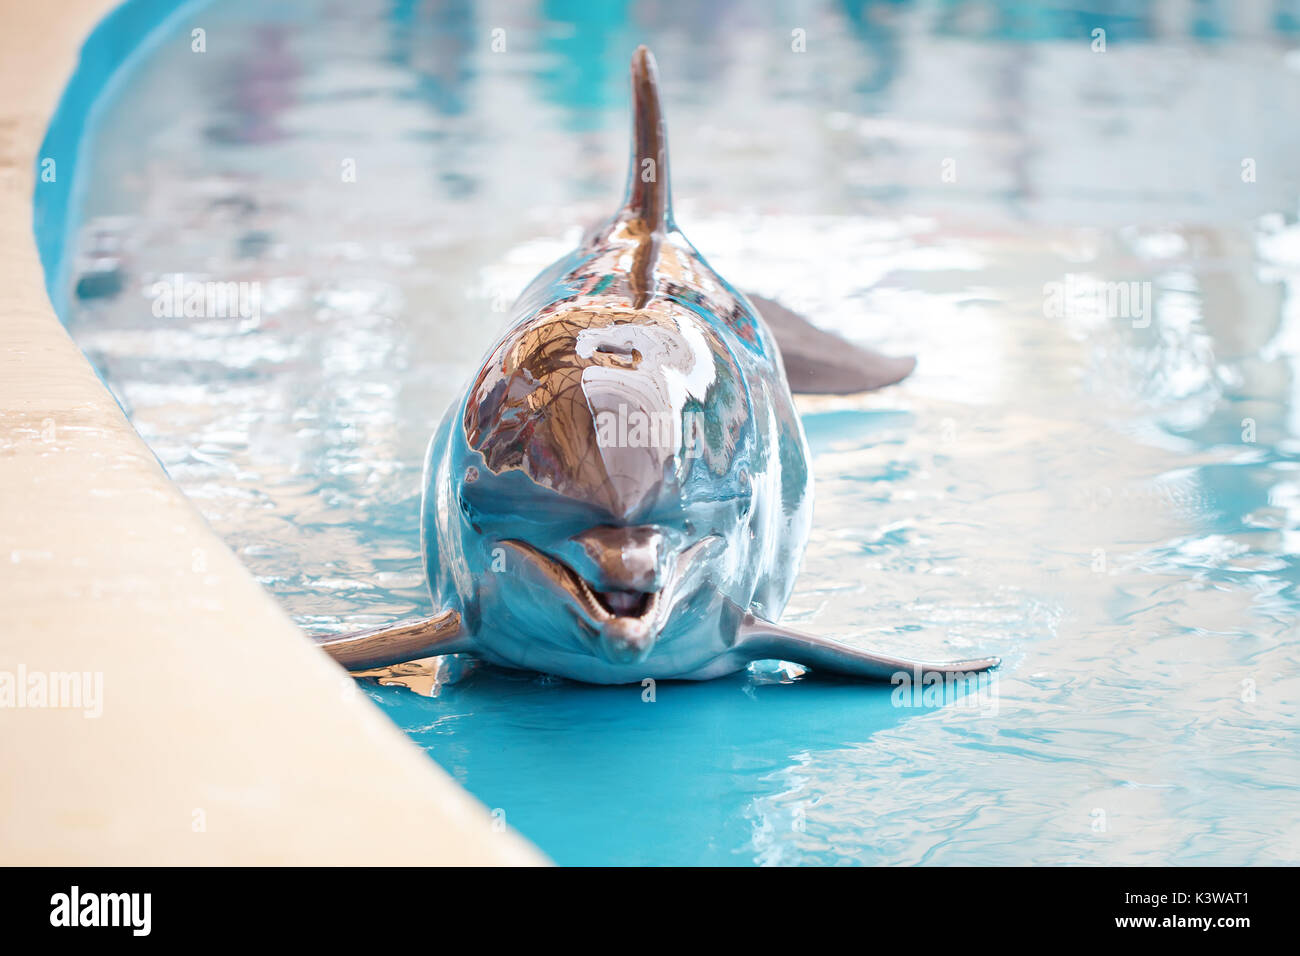 A young Dolphin is smiling and playing in the pool. - Stock Image